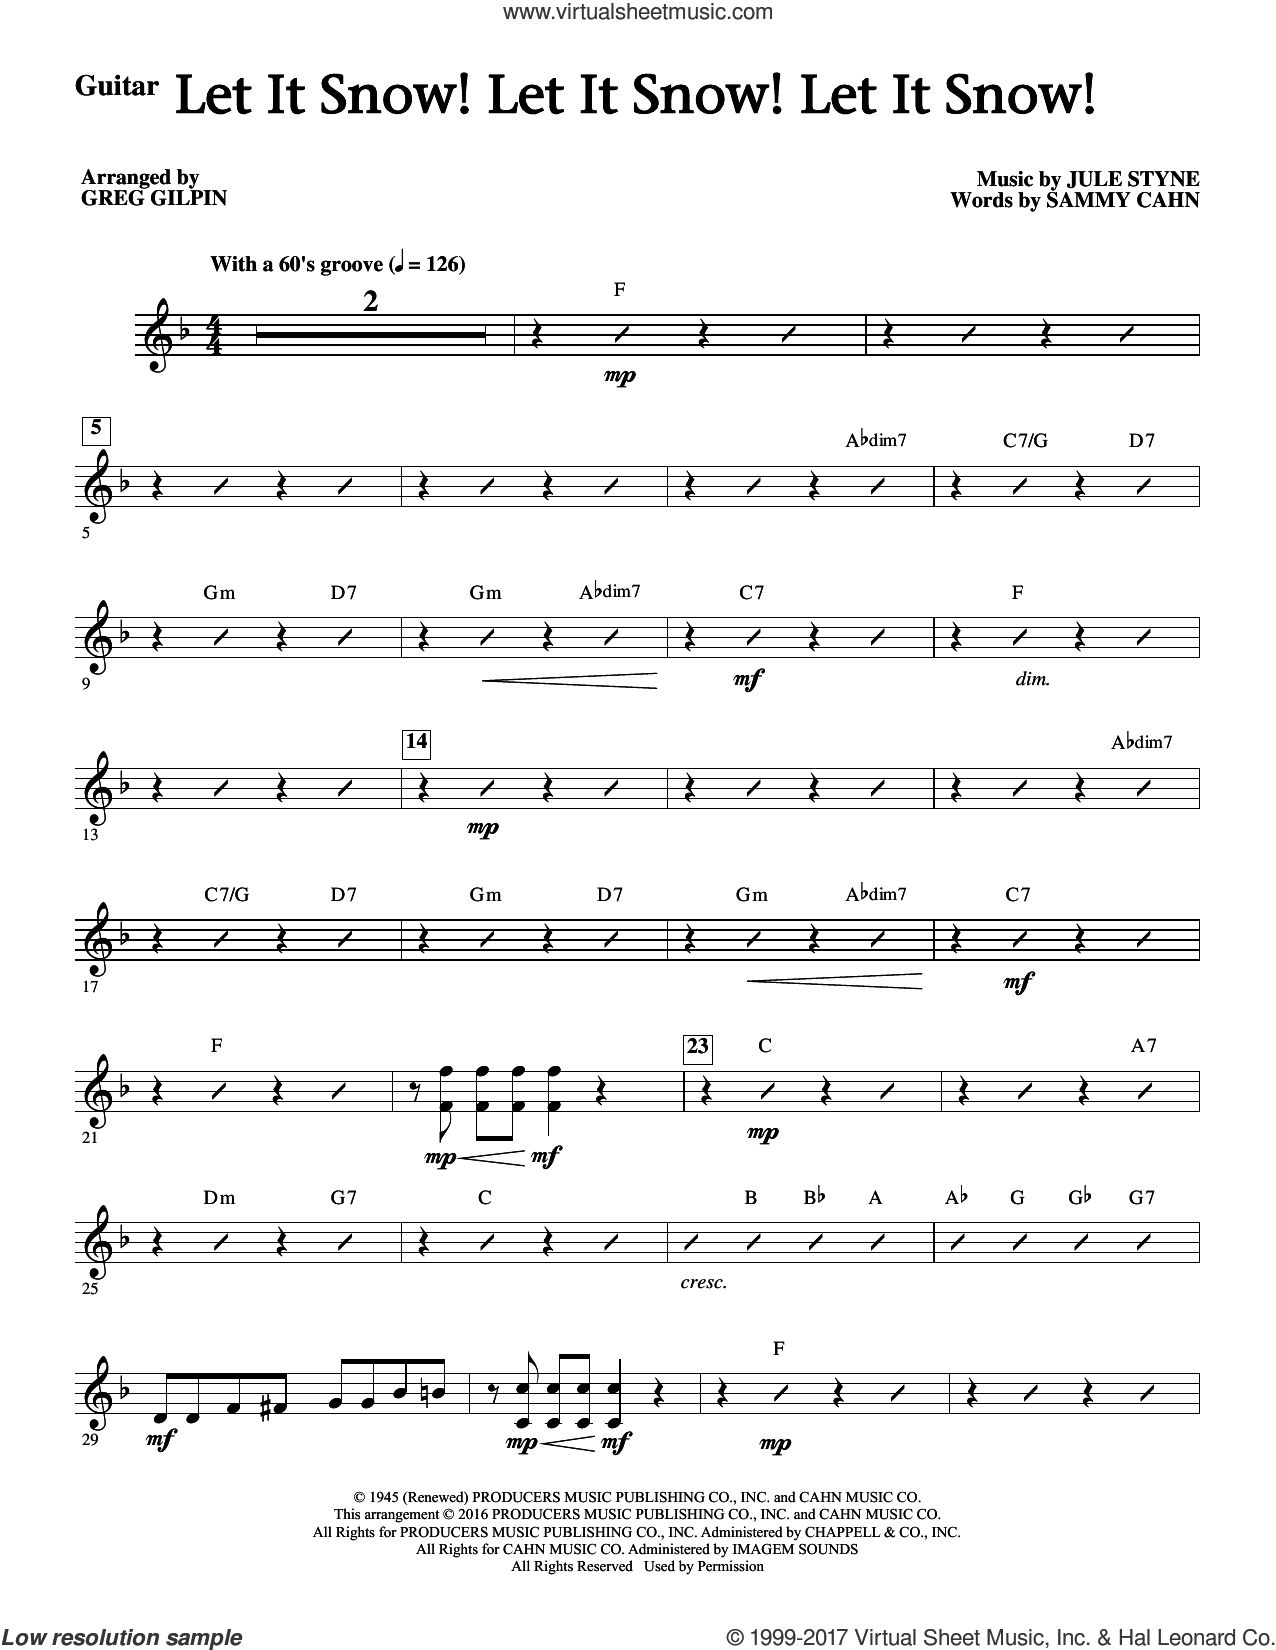 Let It Snow! Let It Snow! Let It Snow! (complete set of parts) sheet music for orchestra/band by Sammy Cahn, Greg Gilpin and Jule Styne, intermediate skill level